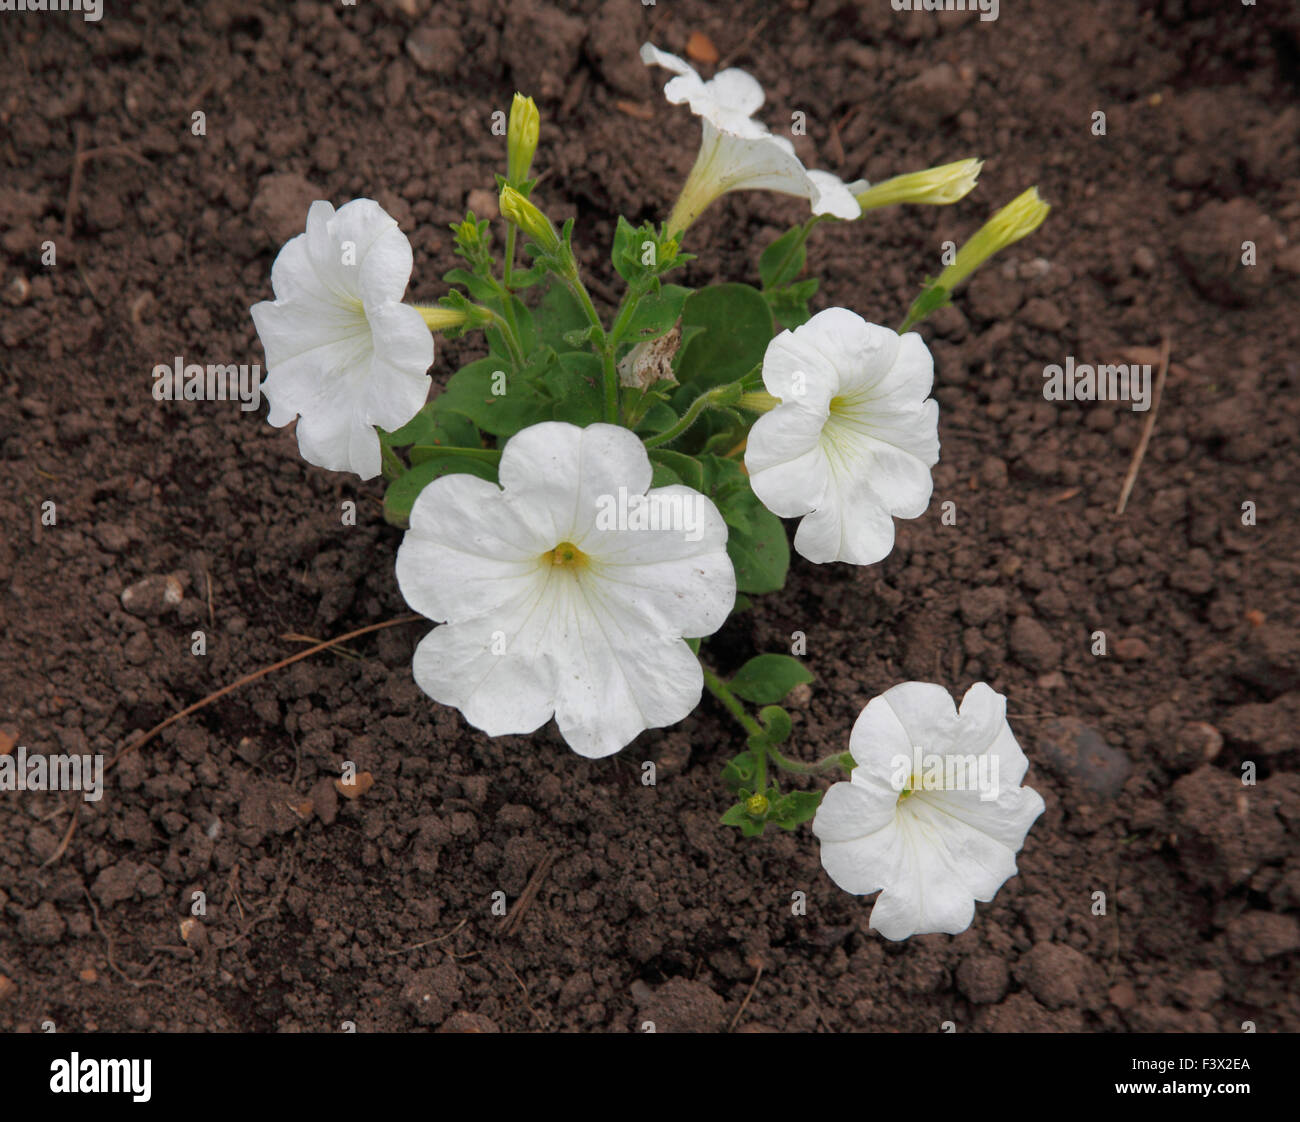 Petunia 'Frenzy White' close up of flowers - Stock Image